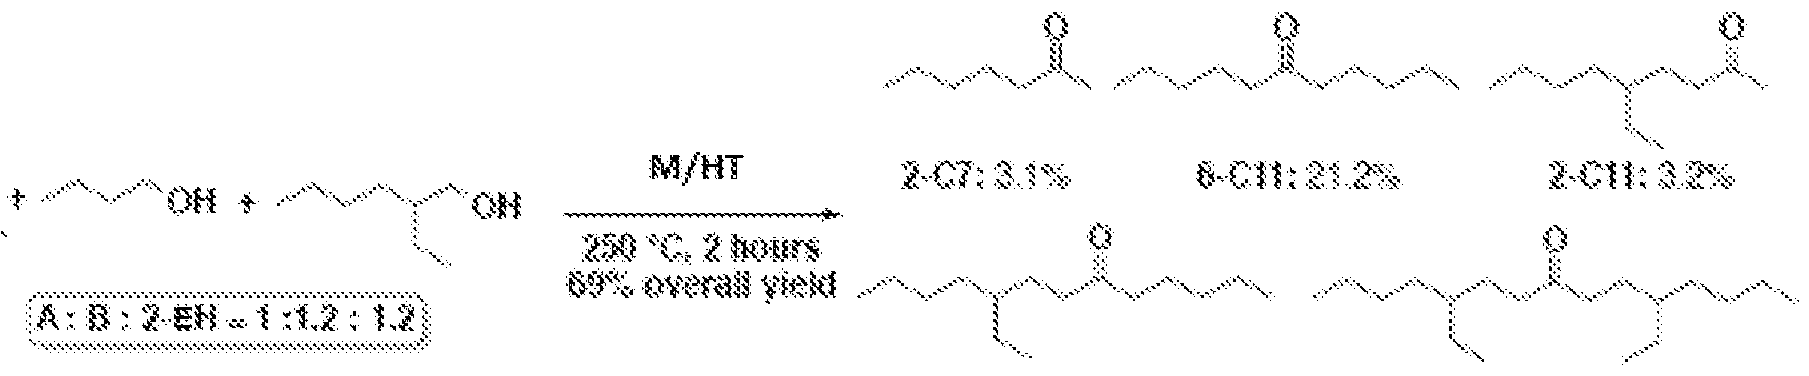 WO2014176552A2 - Methods to produce fuels - Google Patents